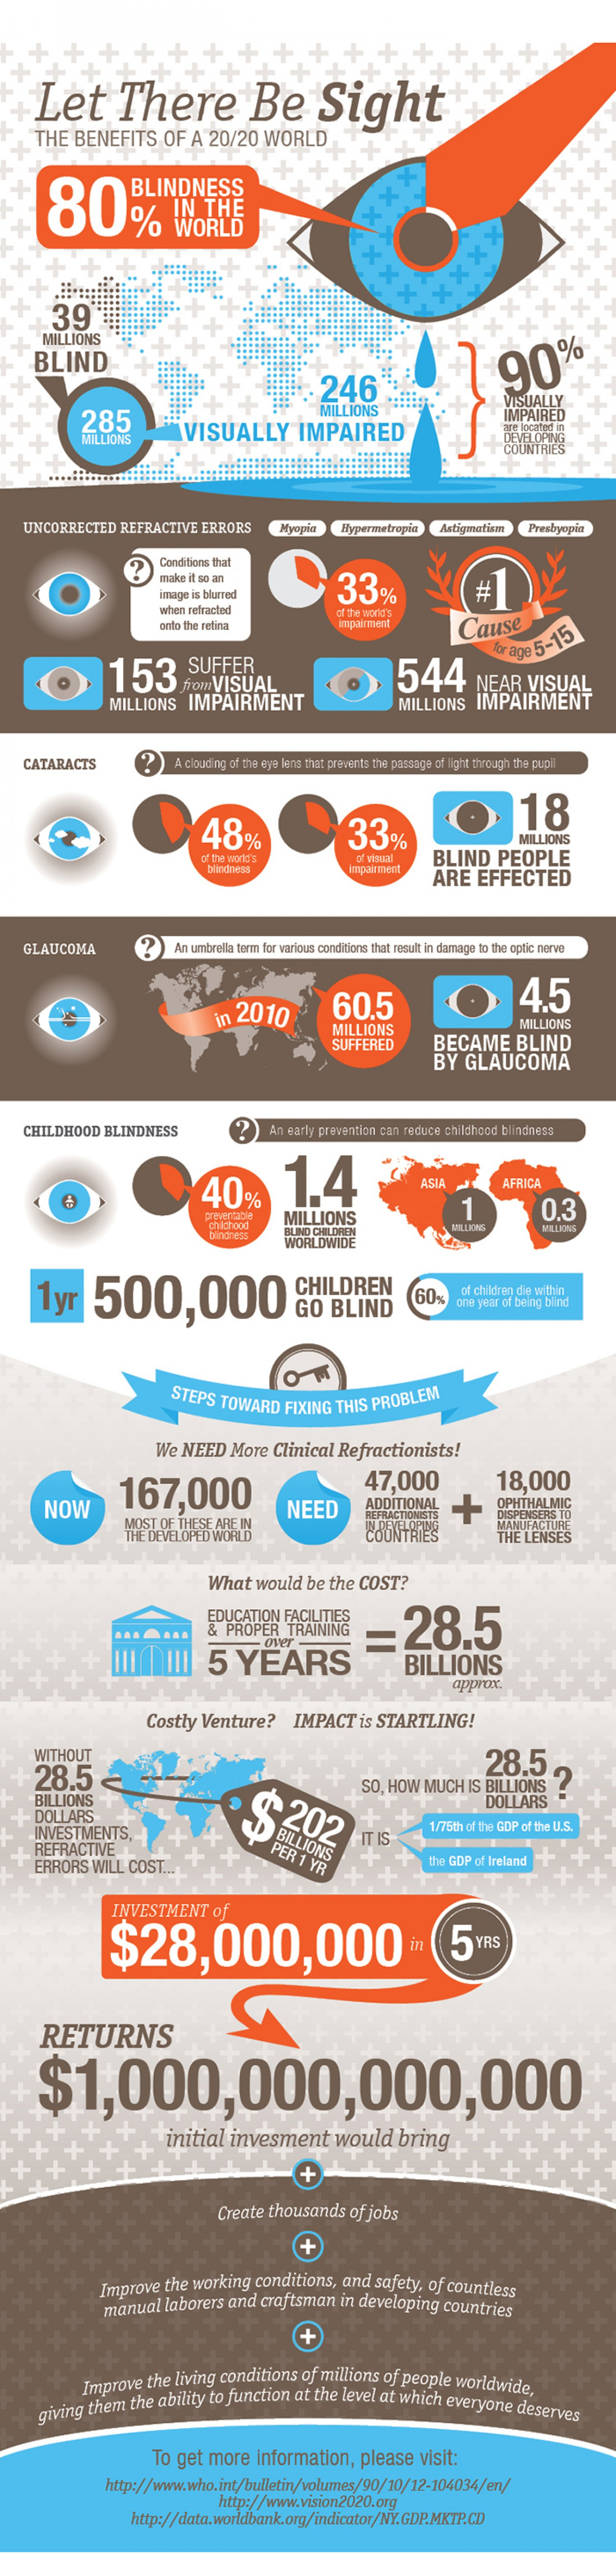 15 Interesting Facts about Vision